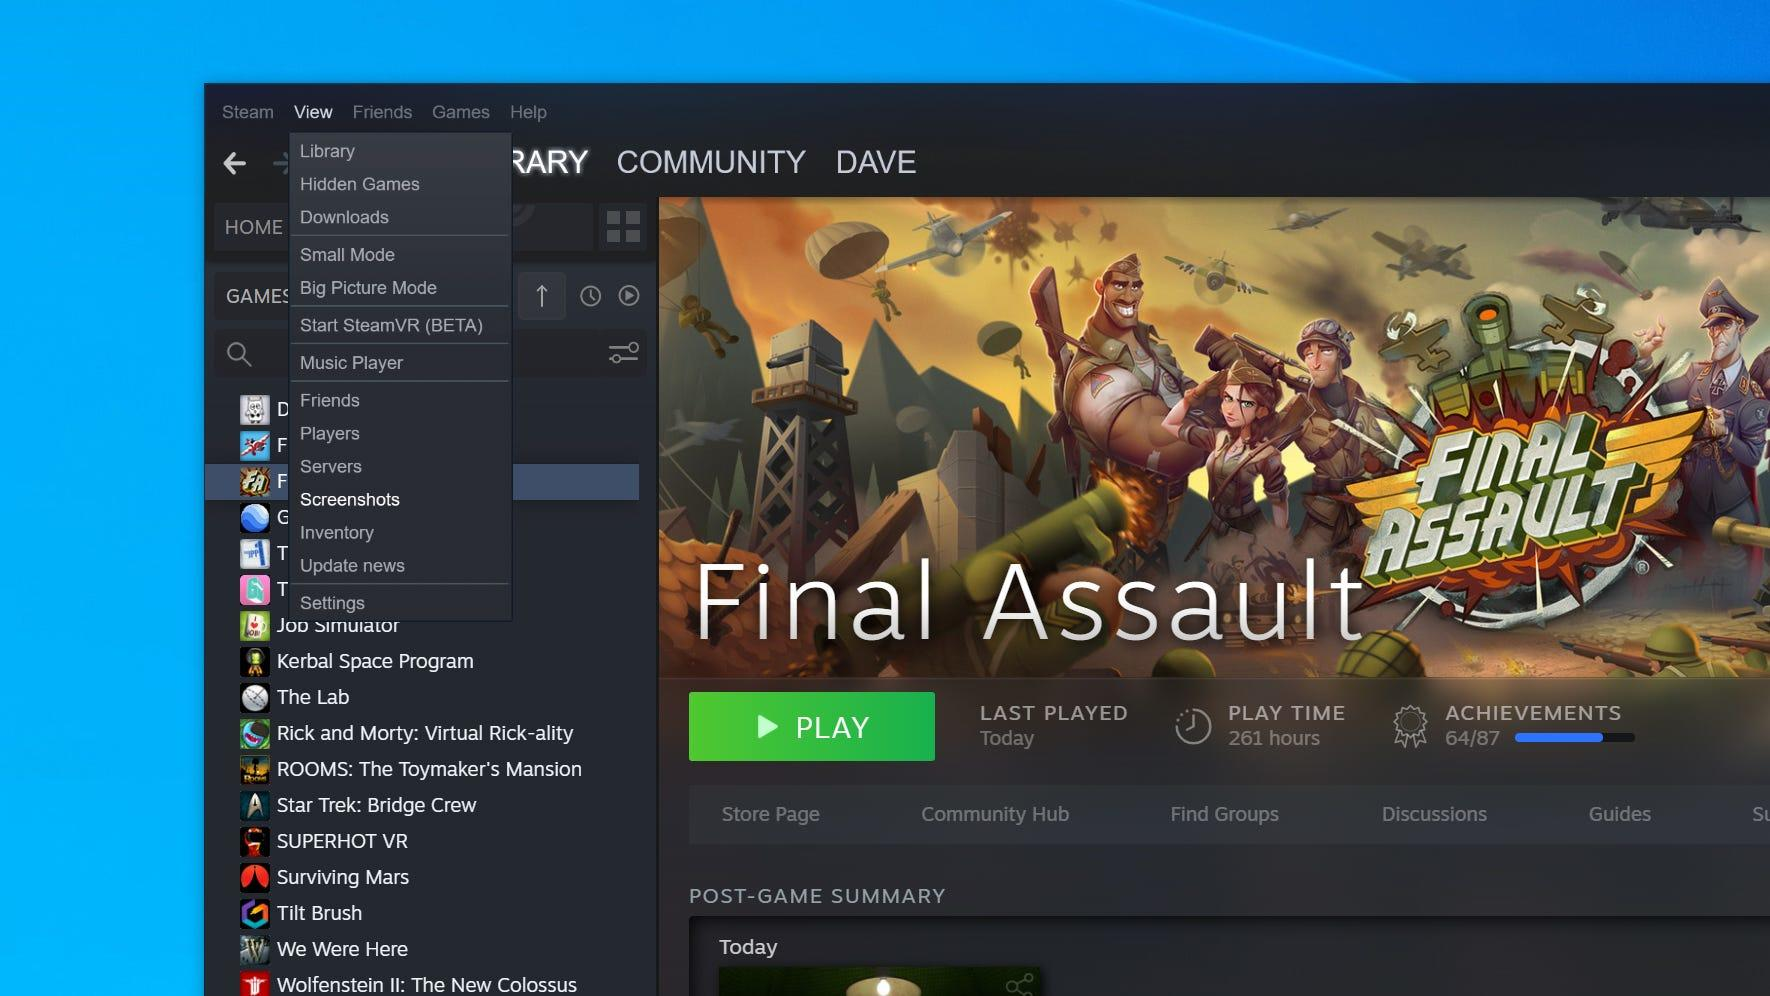 Where Are Steam Screenshots Saved How To Find You Screen Grabs On The Steam Gaming App Or Your Hard Drive Business Insider India